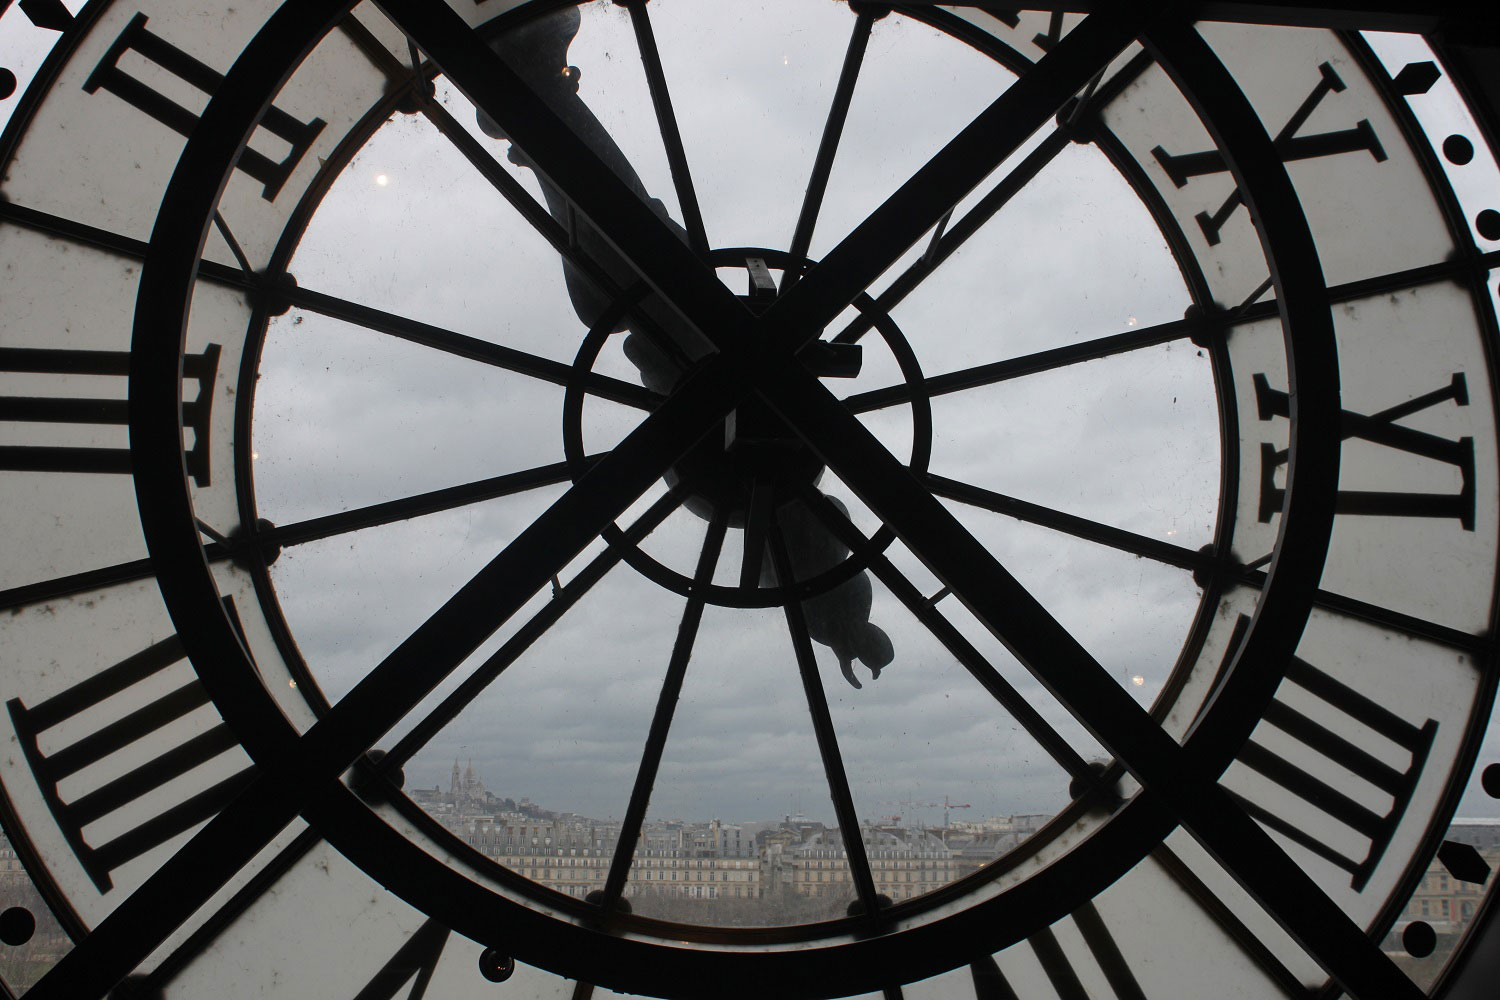 The clock inside the Musee d'Orsay